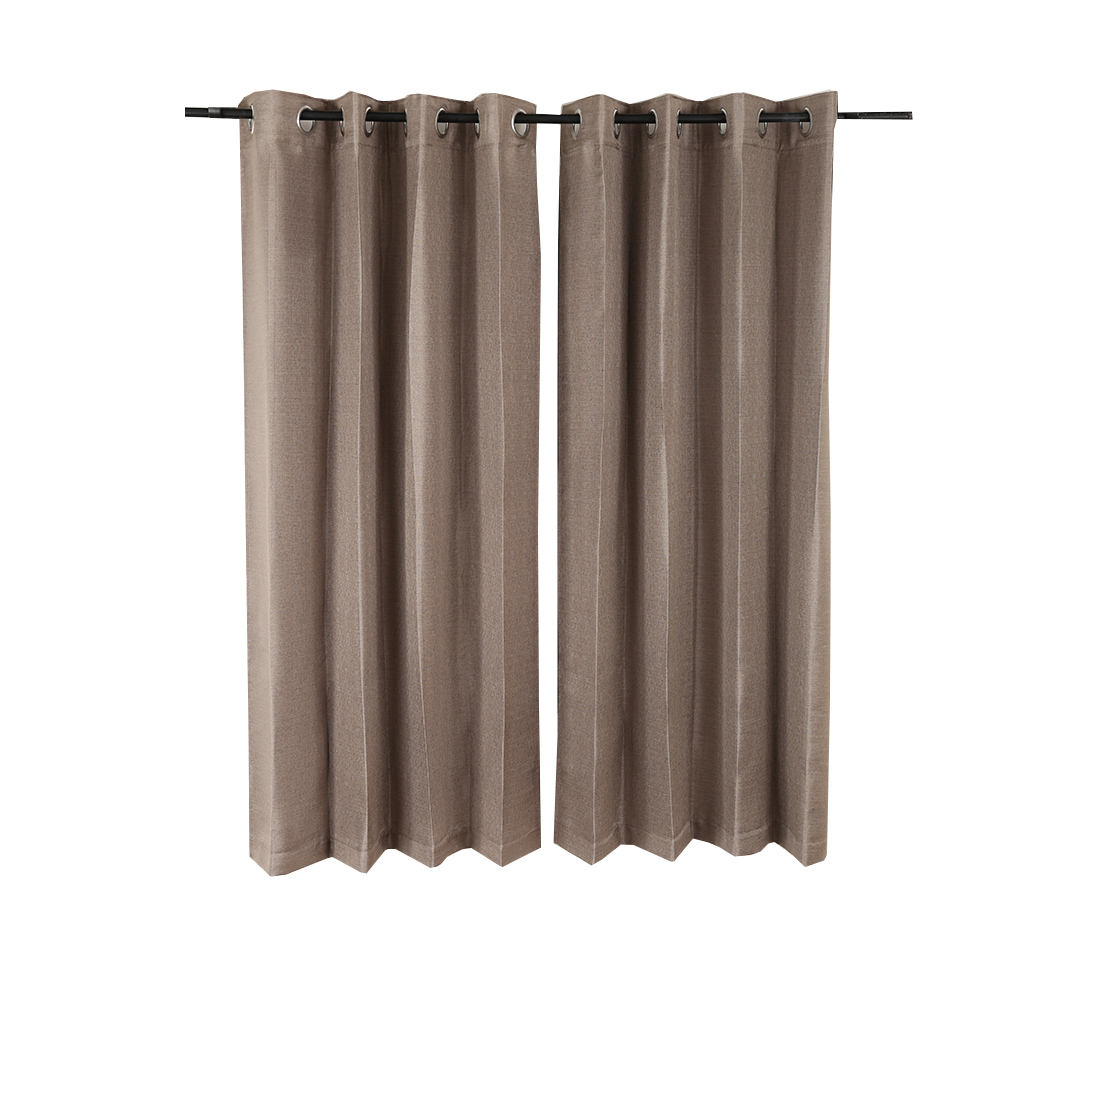 Textura Window Curtain Grey Set of 2 Polyester Window Curtains in Grey Colour by Living Essence